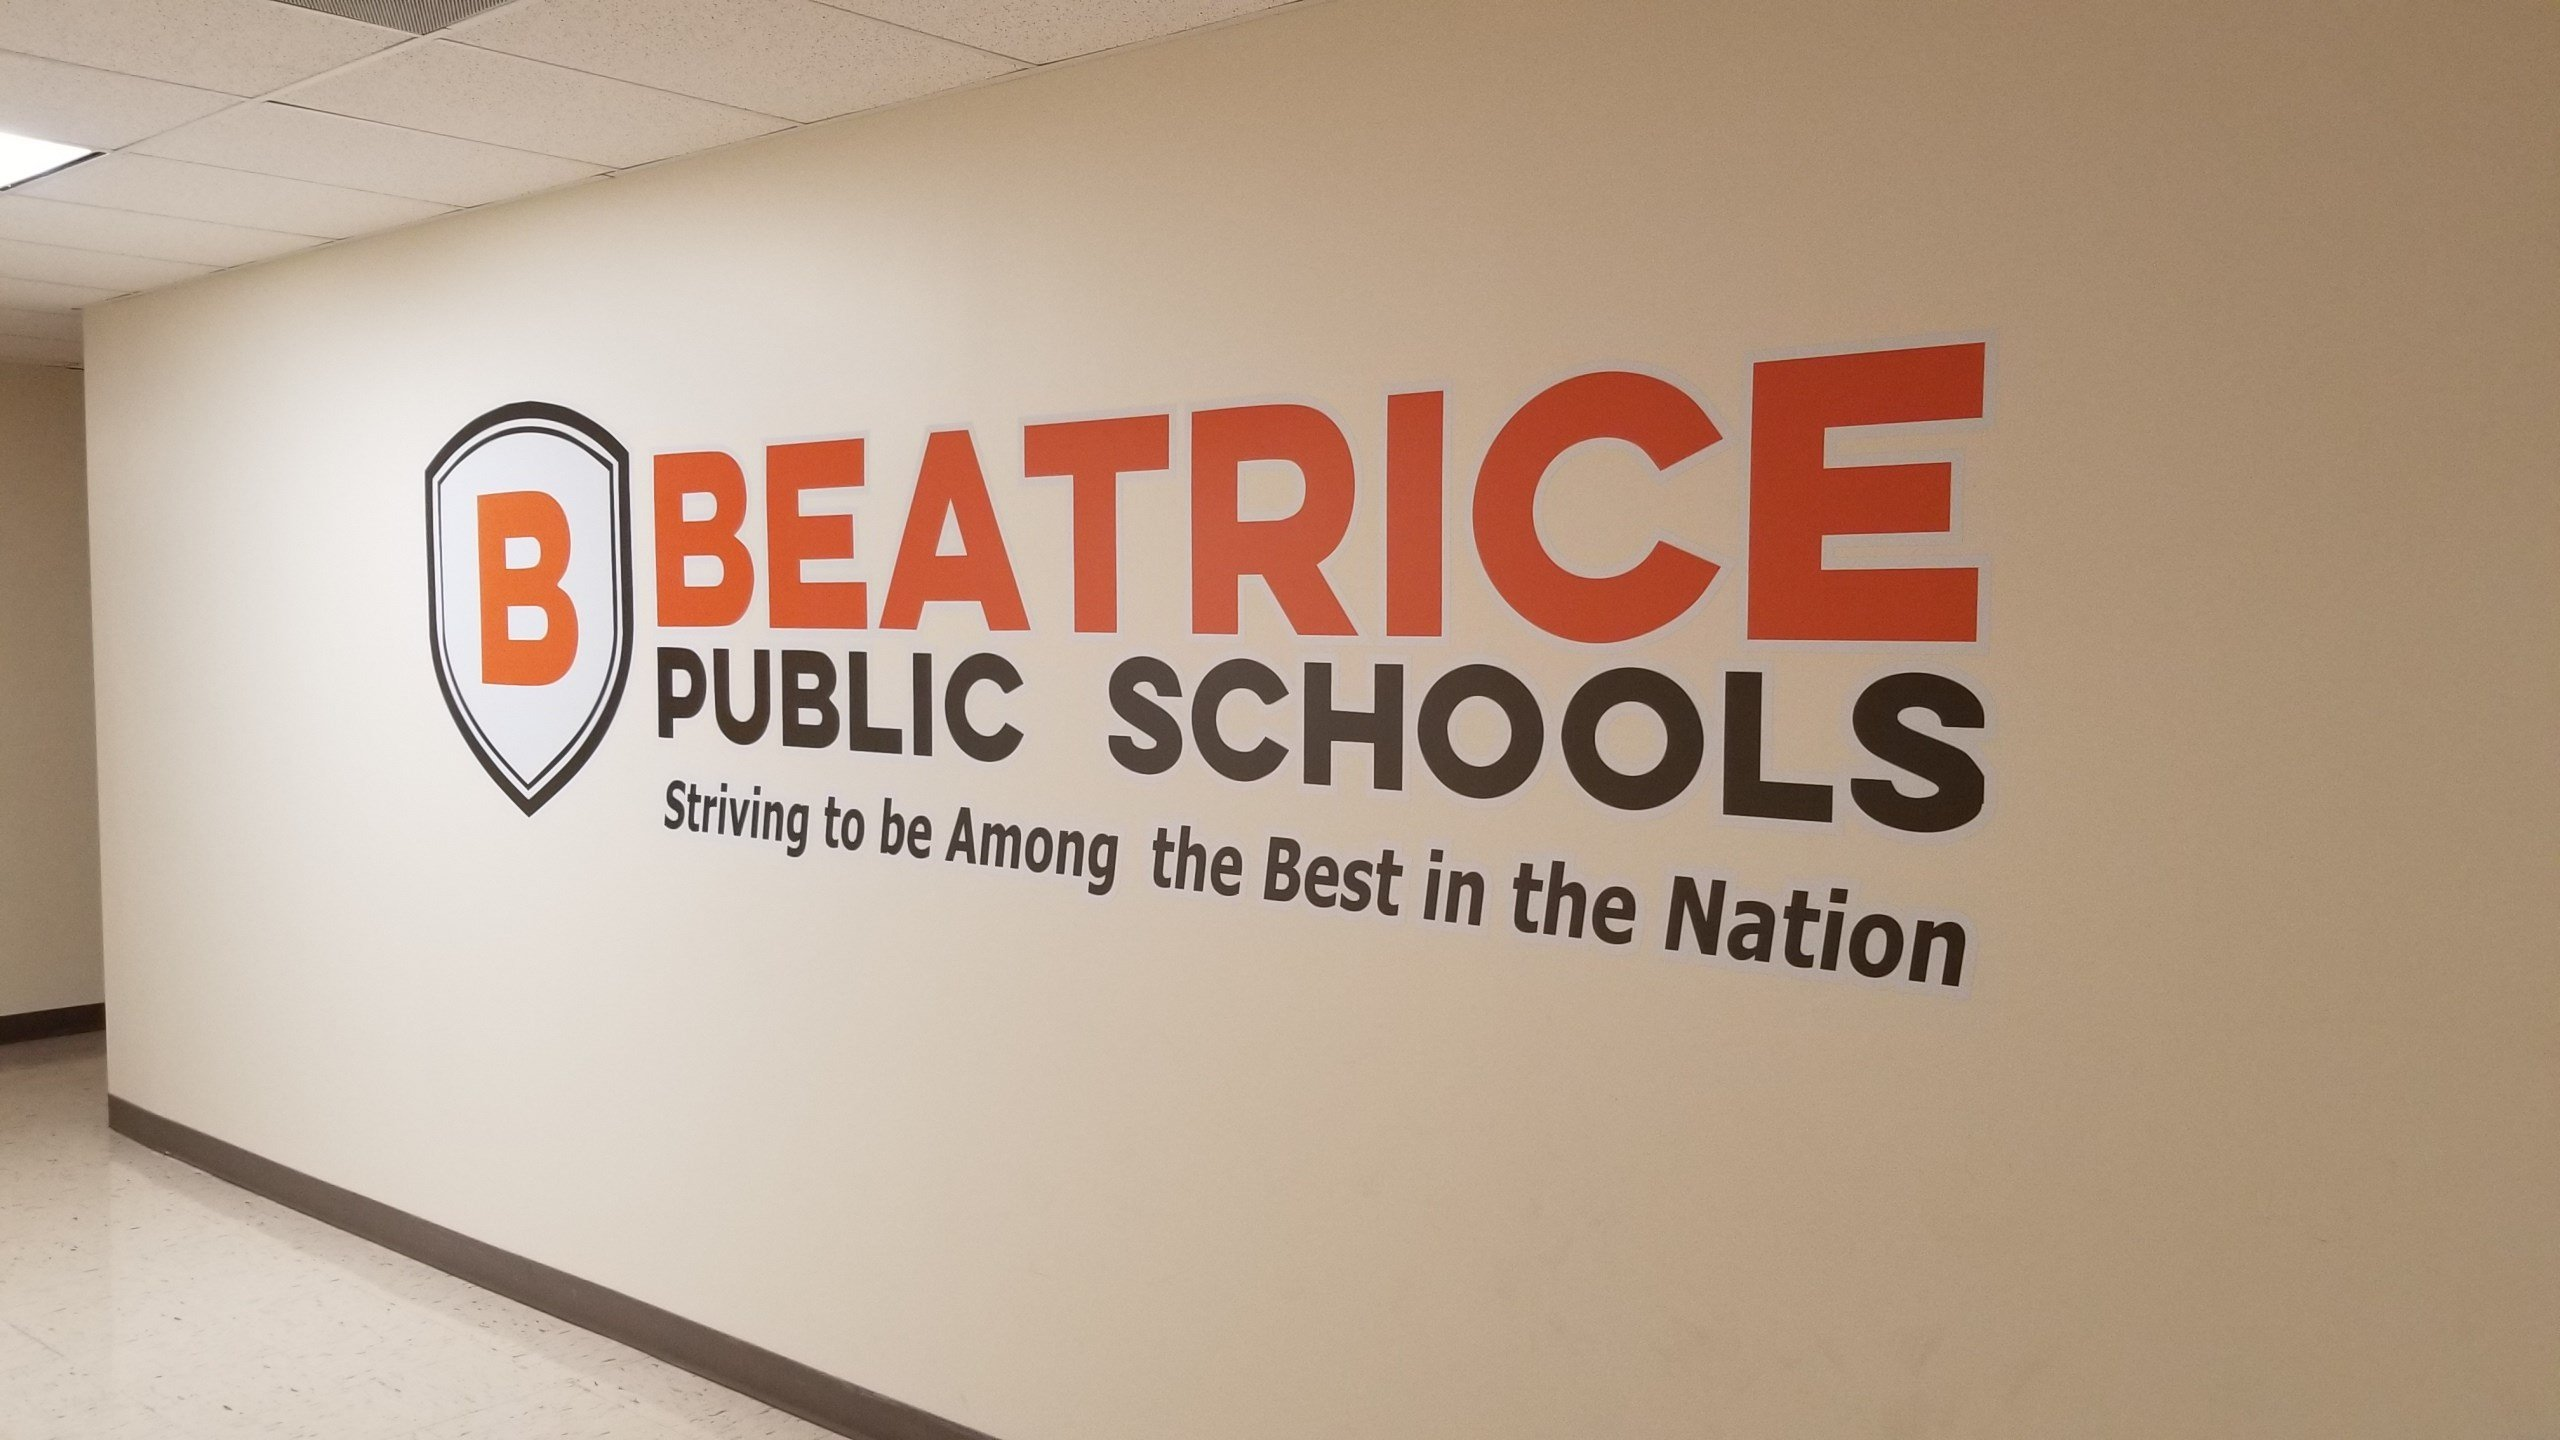 Beatrice school officials hear ultimatum on state education policies